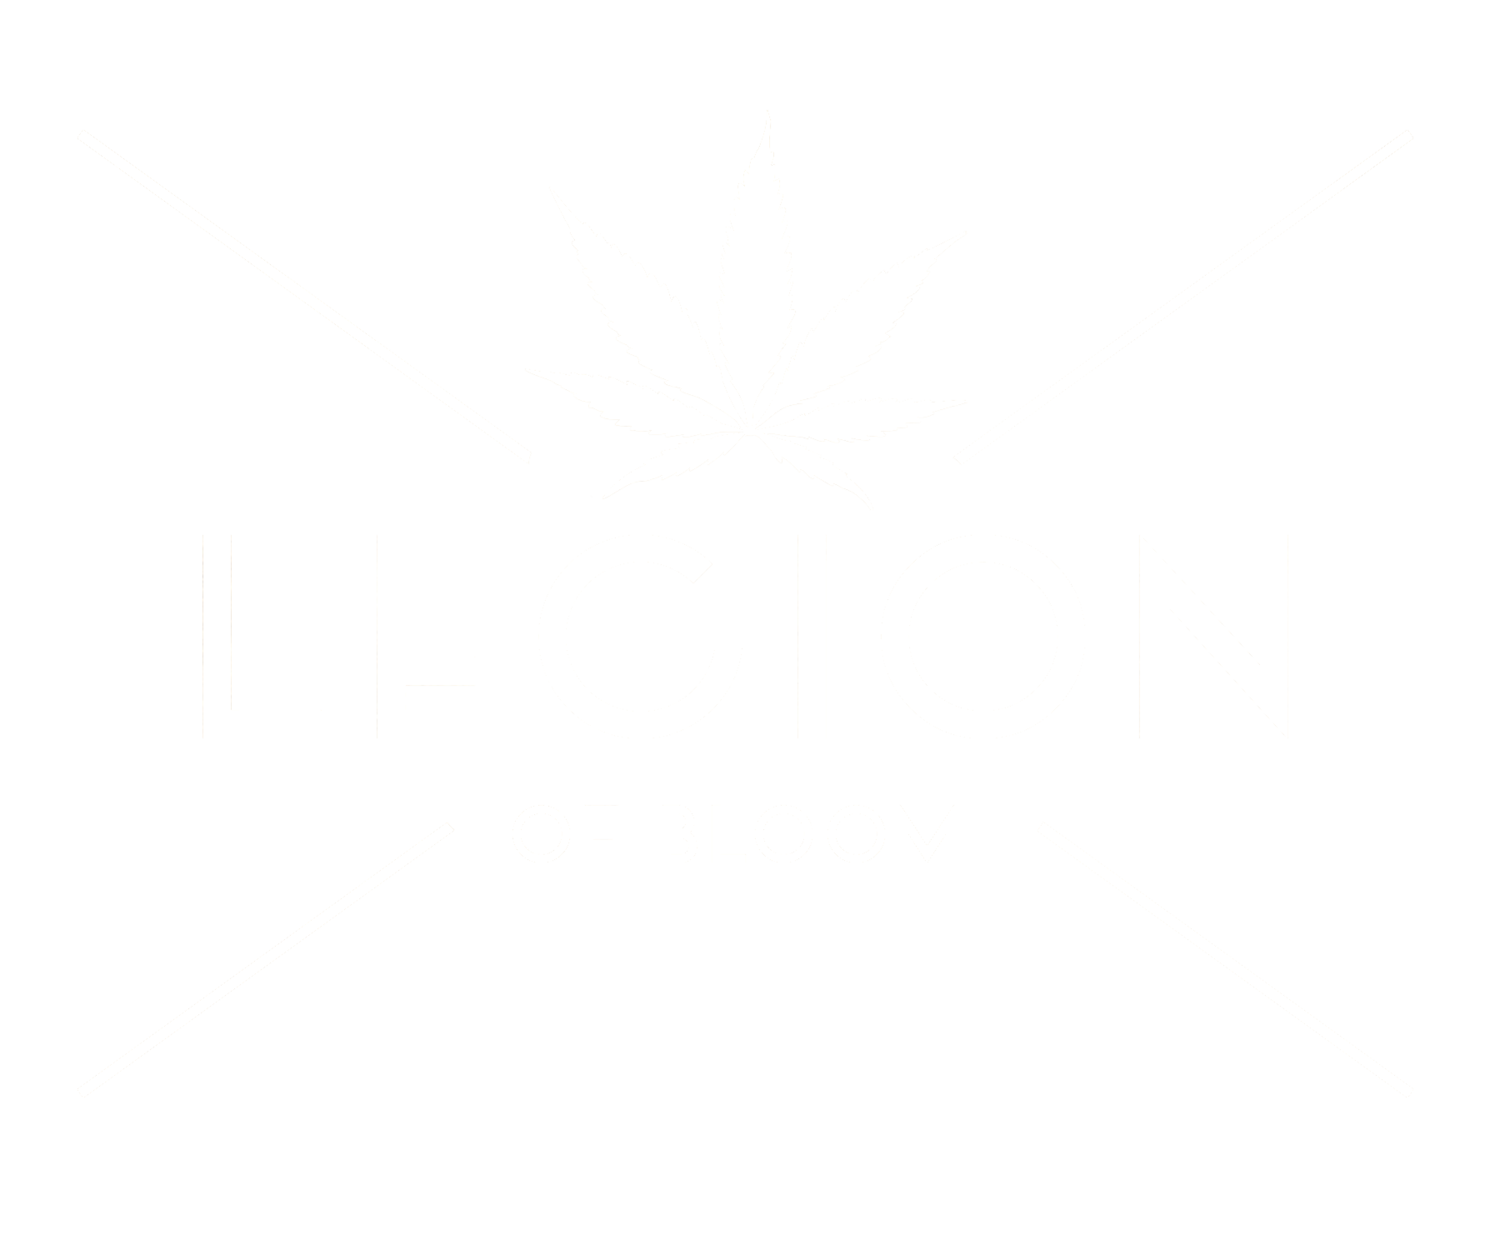 THE LEGION OF BLOOM